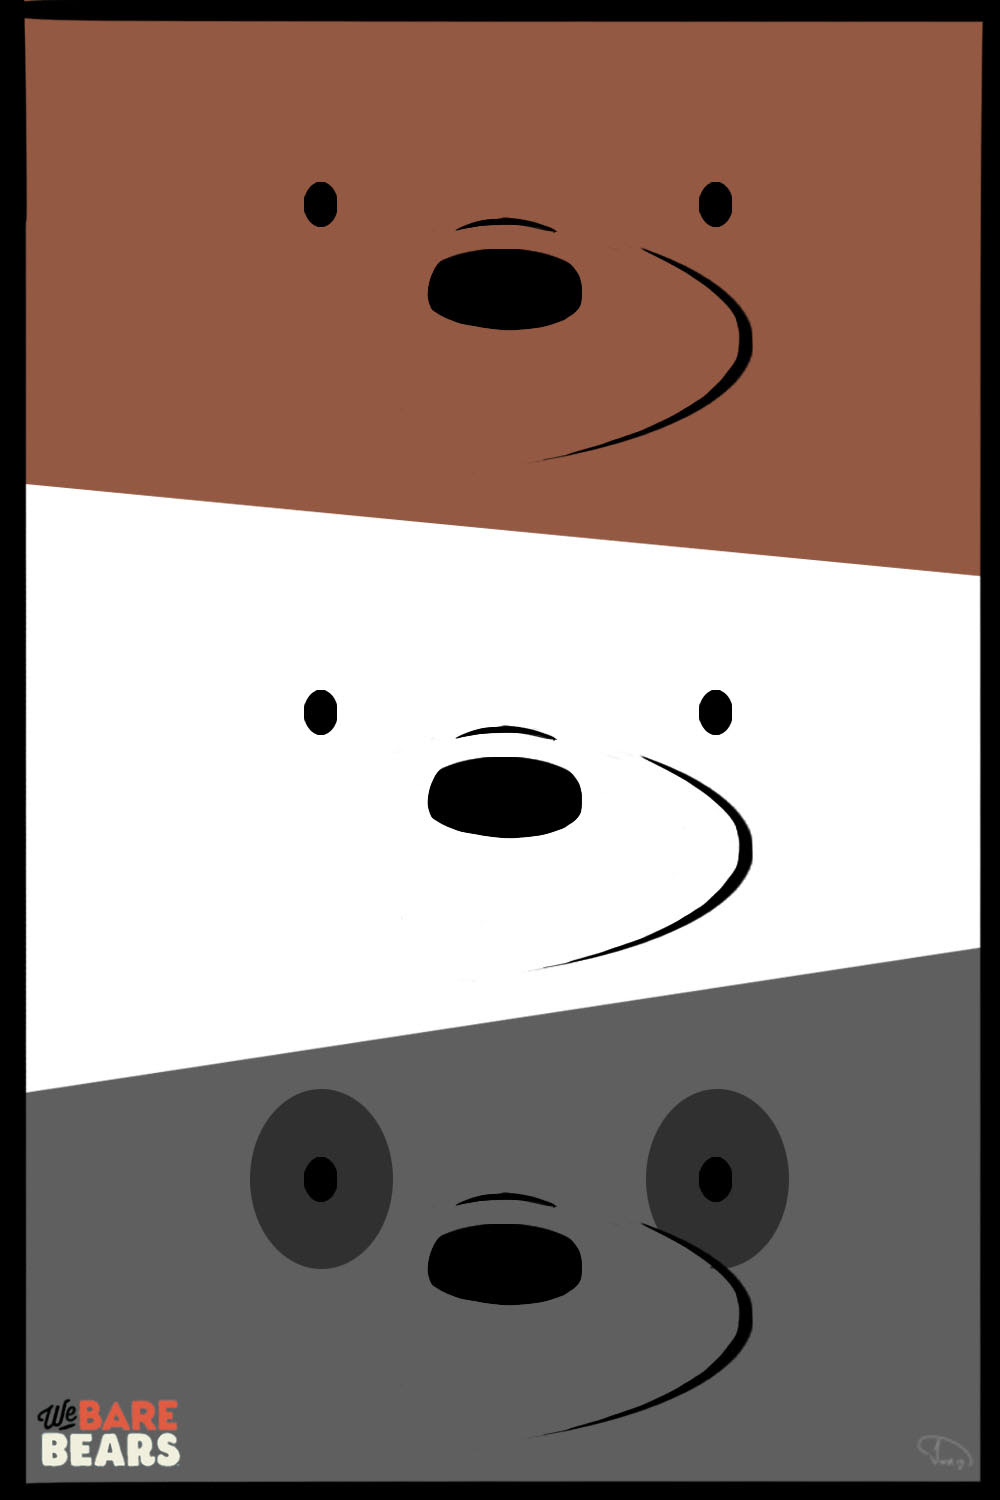 We Bare Bears! by JohnWRoberts on DeviantArt